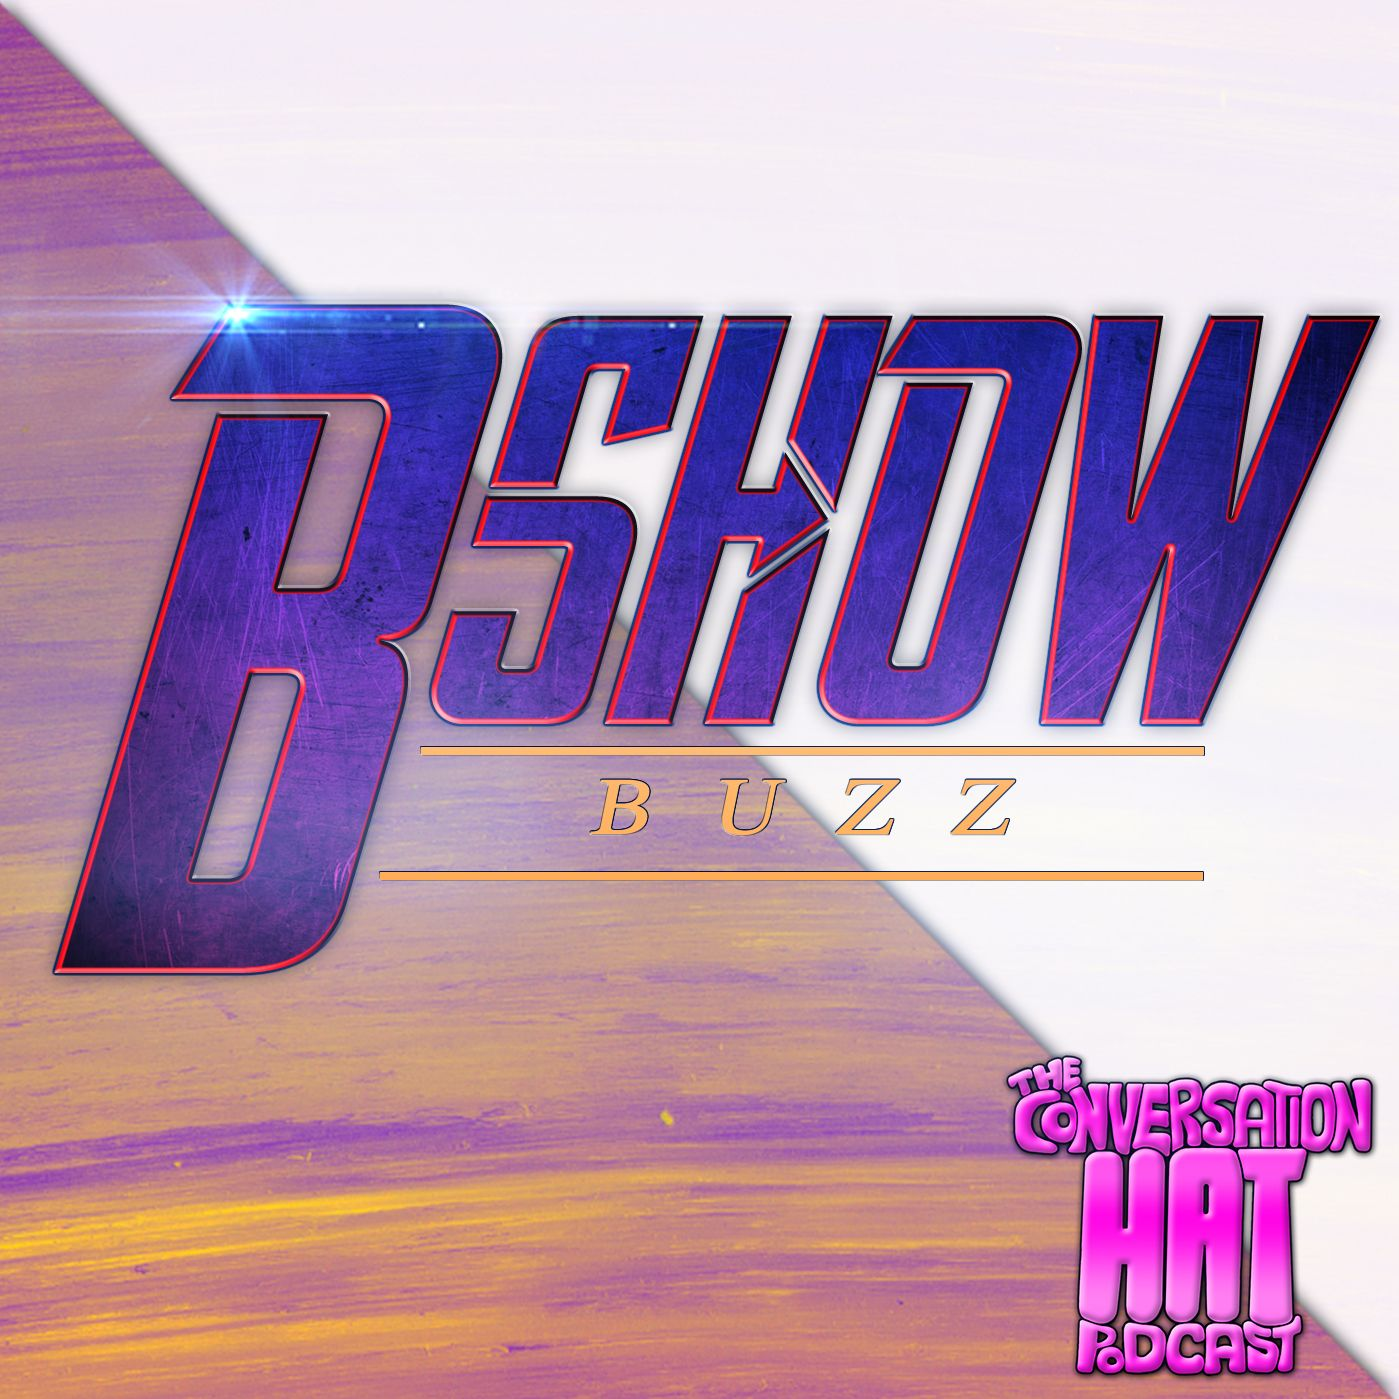 The B Show - A Game To End All Games